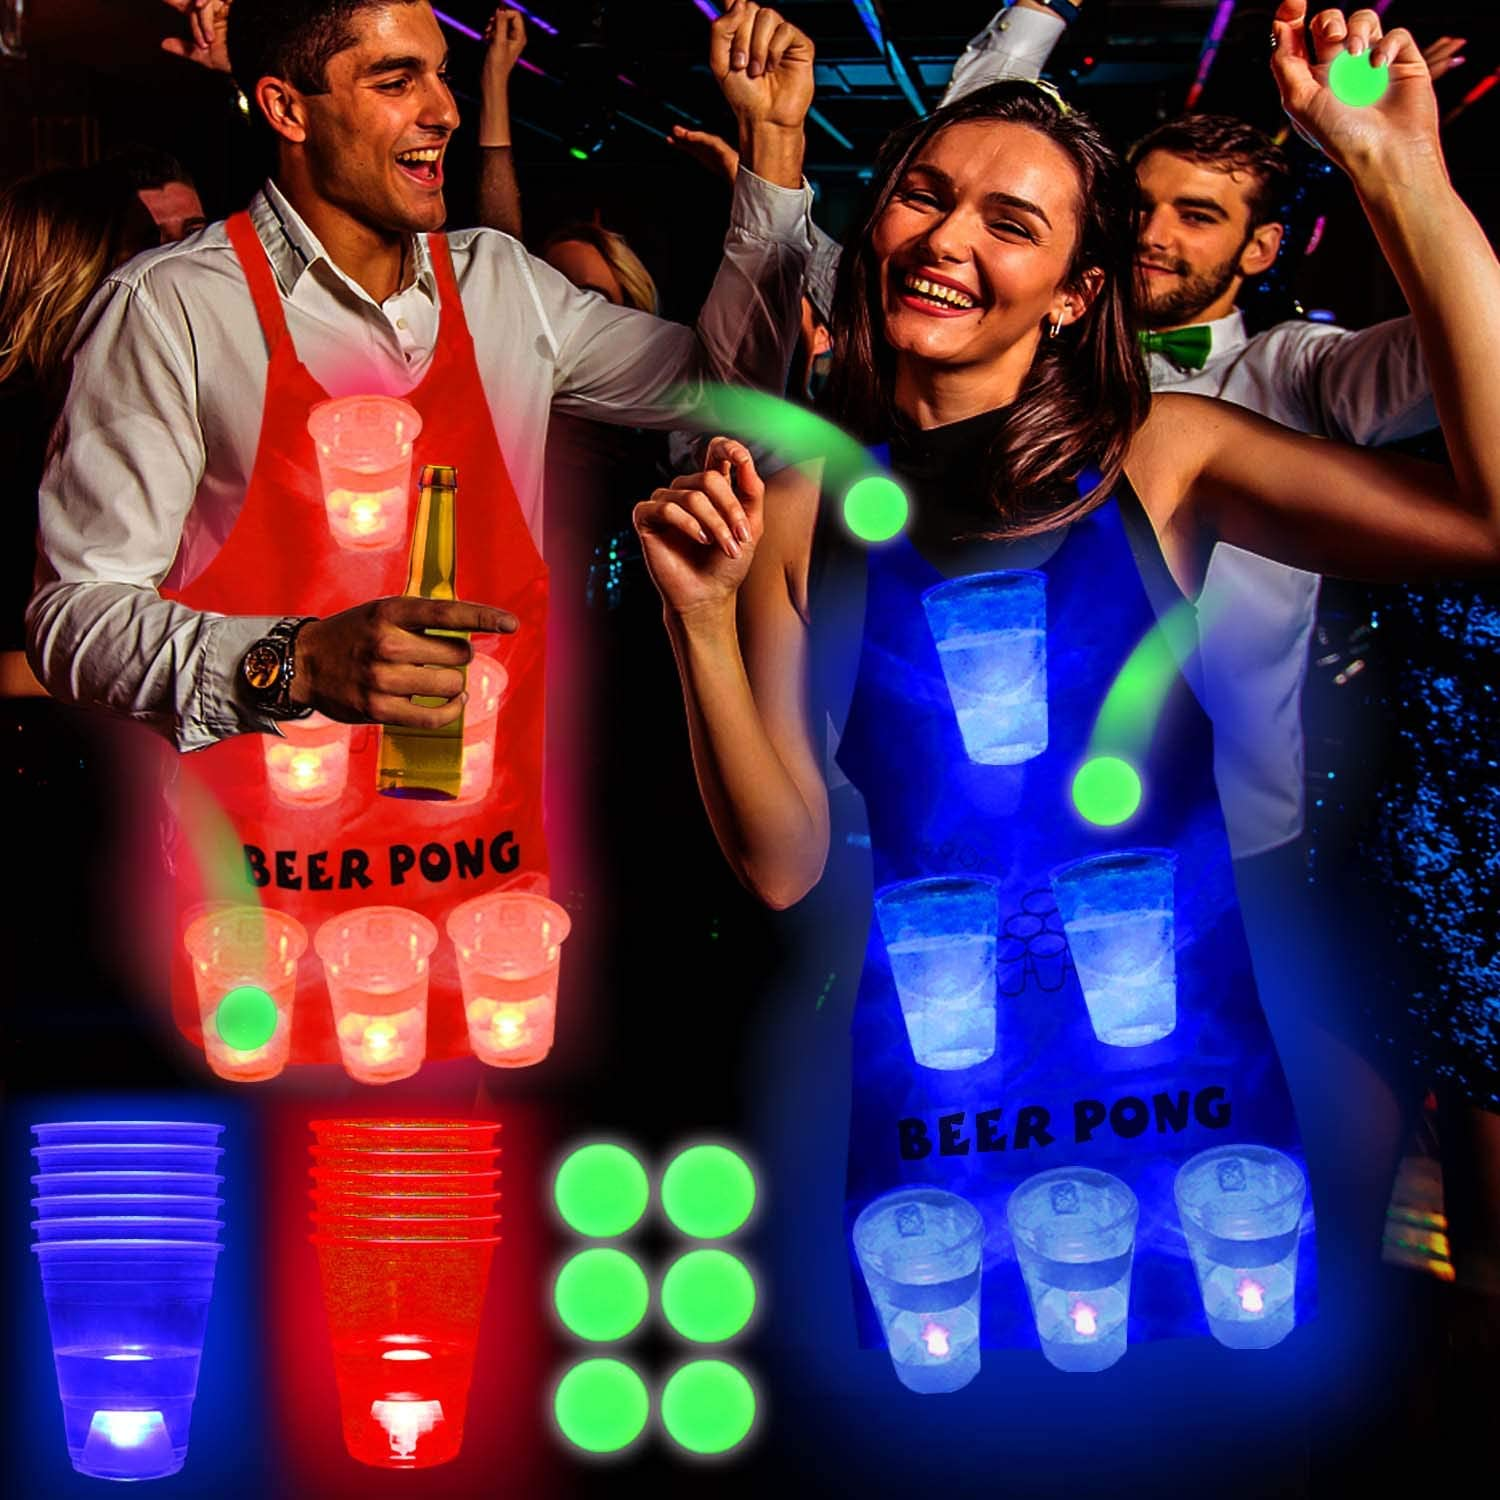 LED Beverage Pong Cups of Beer Pong Apron for House Parties Birthdays Concerts Weddings BBQ Beach DJ Holidays Six Senses Media Light Up Beer Pong Apron Fun Game